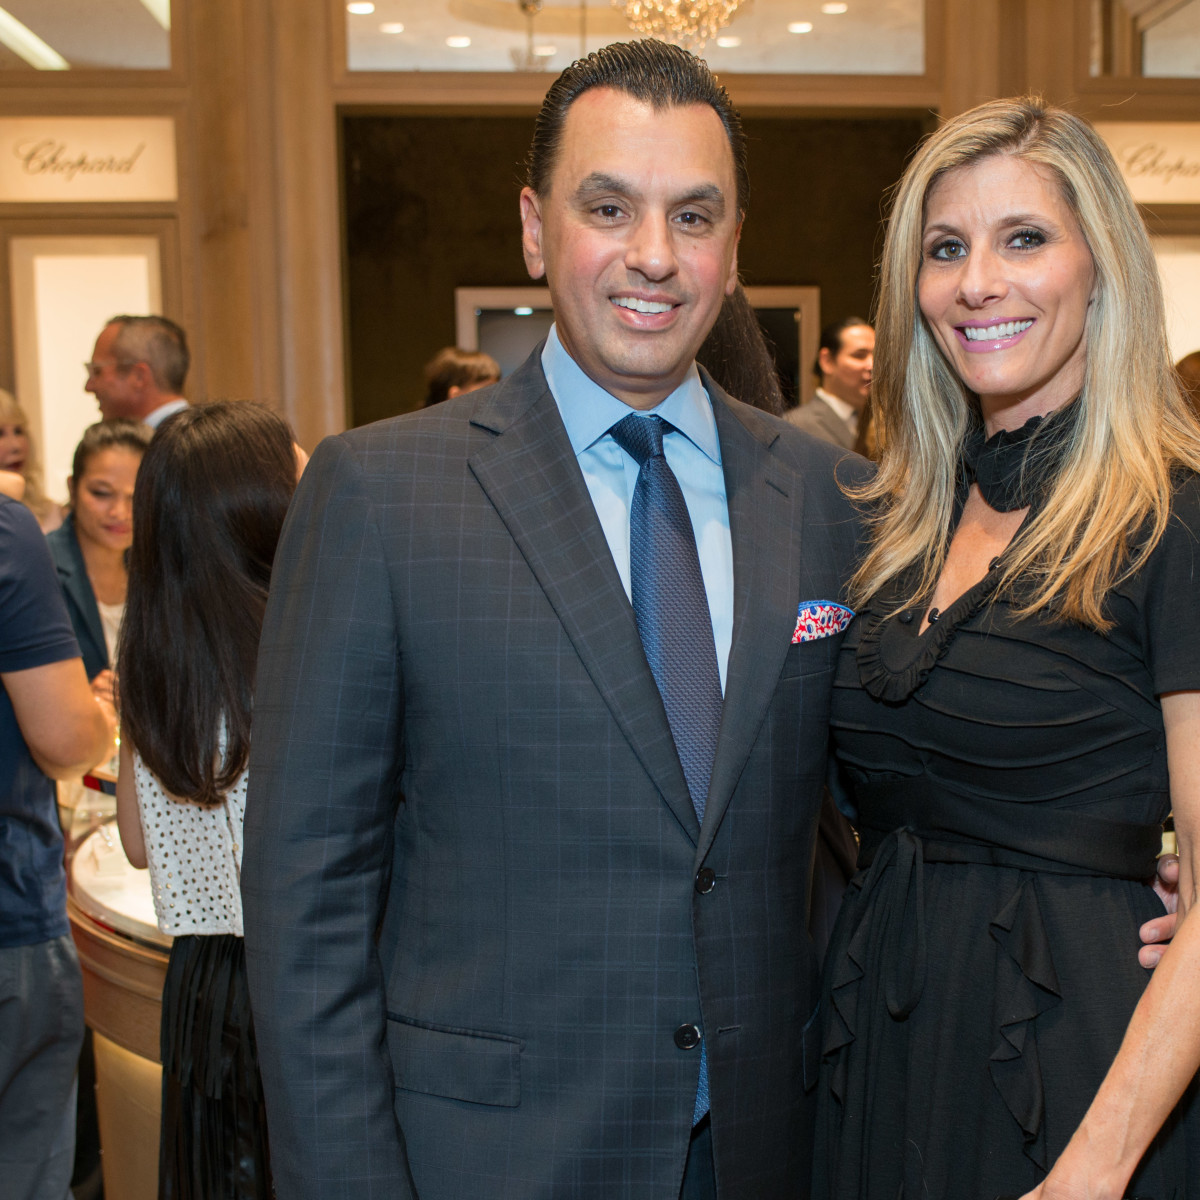 News, Shelby, Chopard opening, Oct. 2015, Gina Bhatia, Dr. Devinder Bhatia